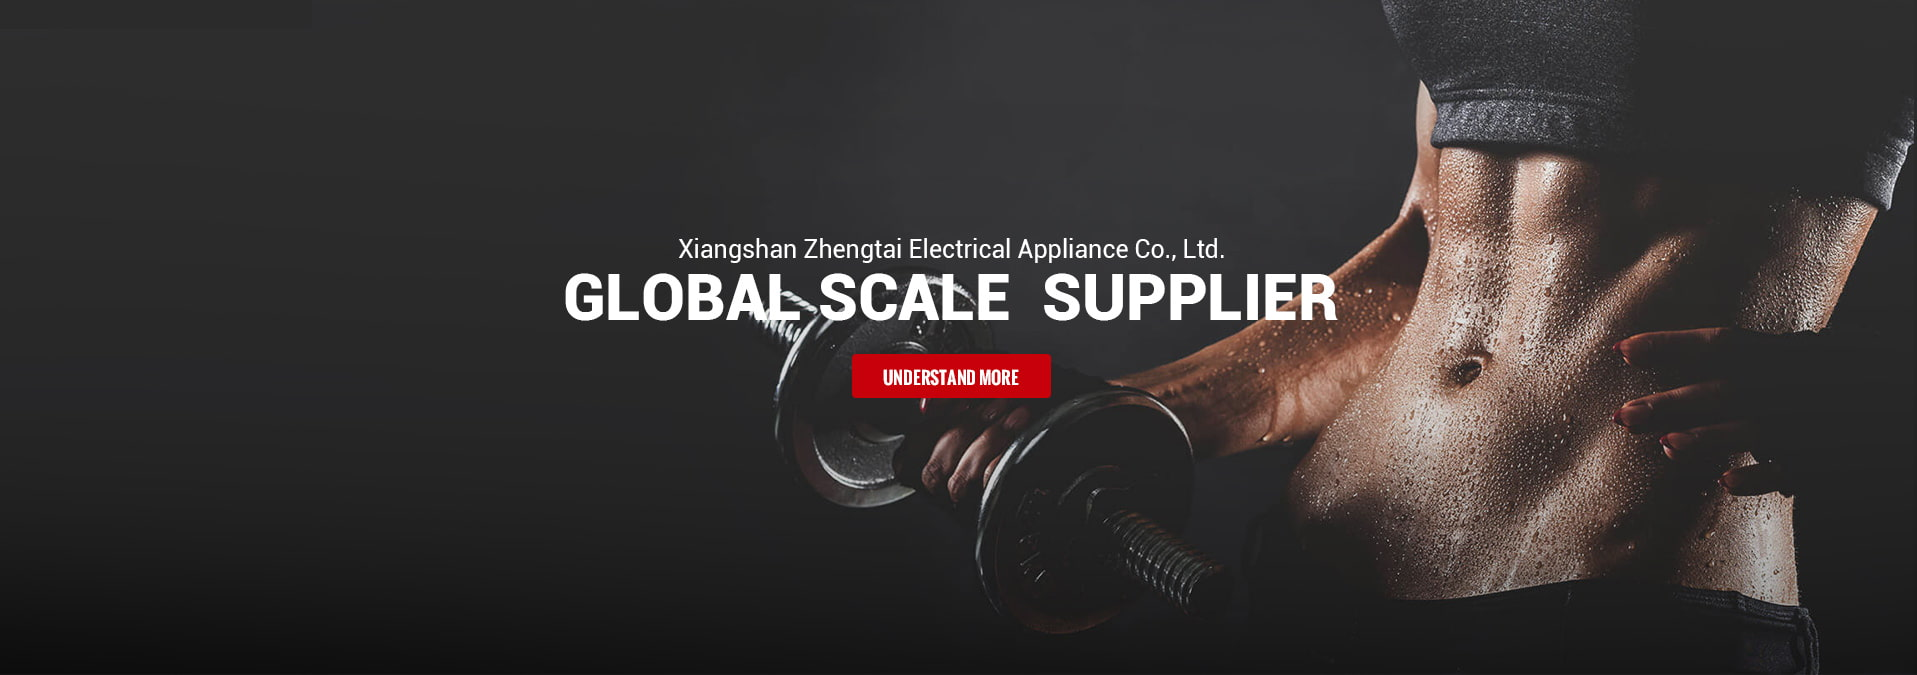 Gobal scale supplier